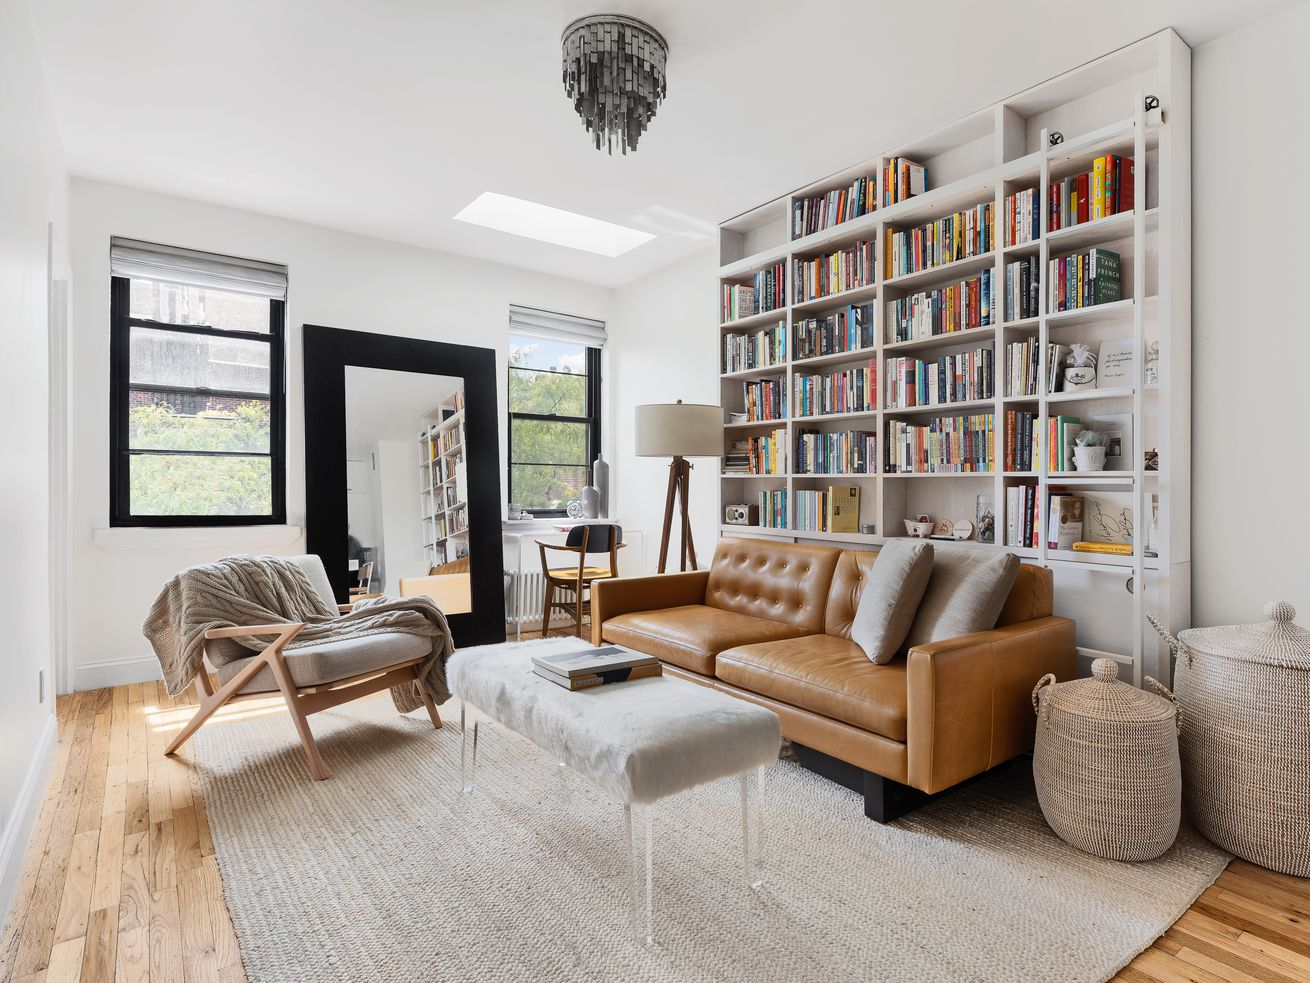 Living room with a brown sofa, wall of bookshelves, two windows, and a skylight.